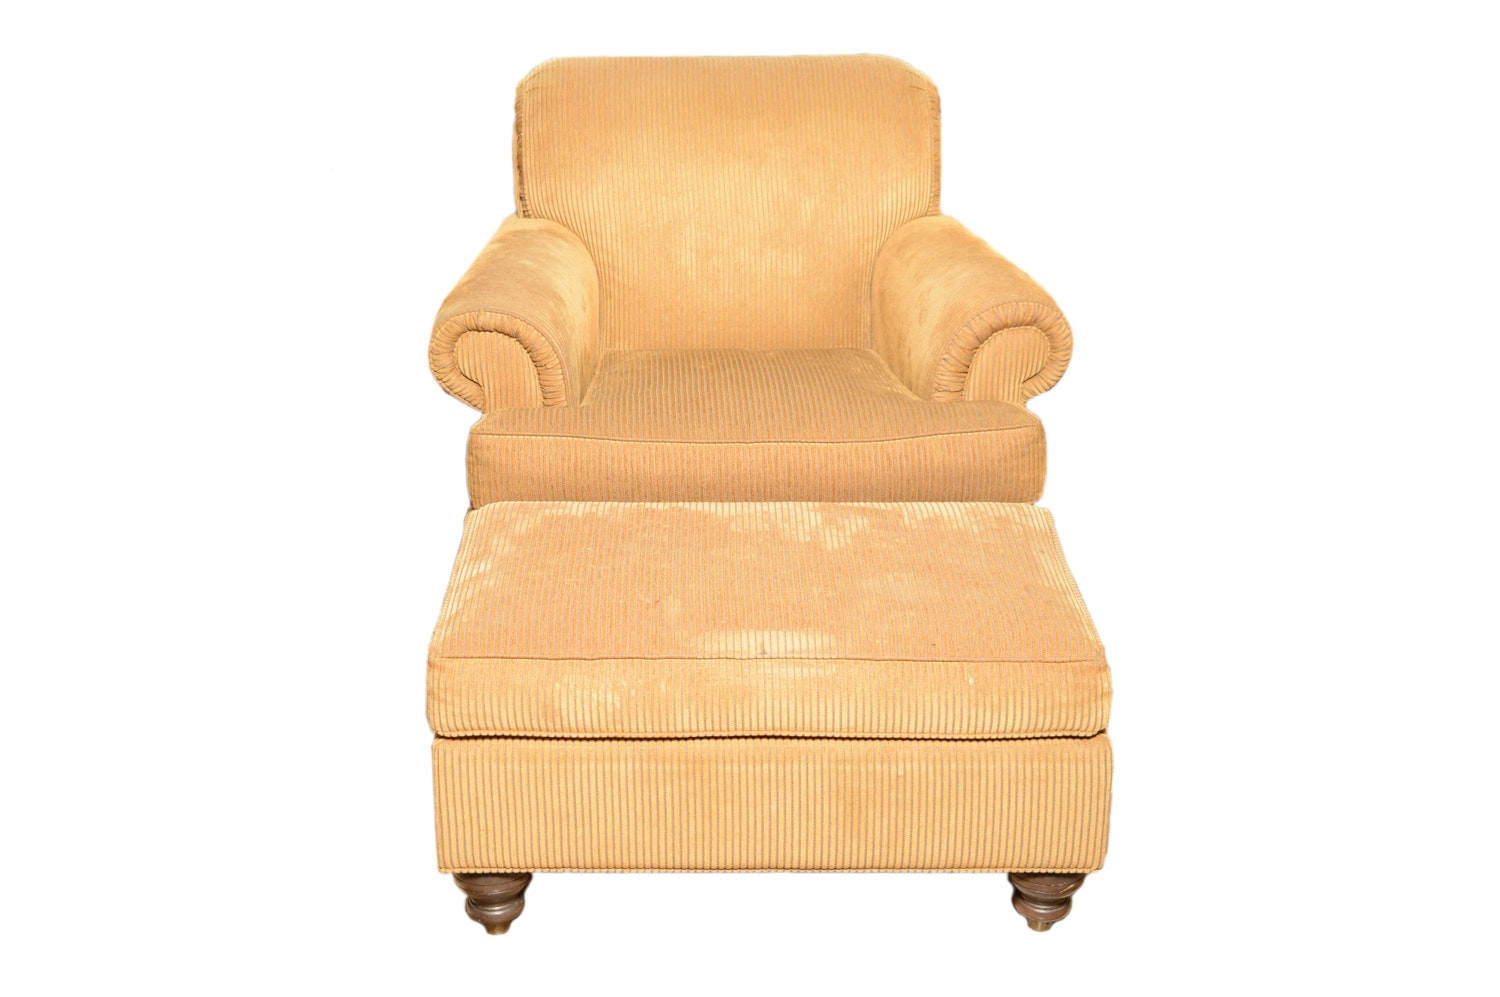 Ethan Allen Upholstered Armchair with Ottoman